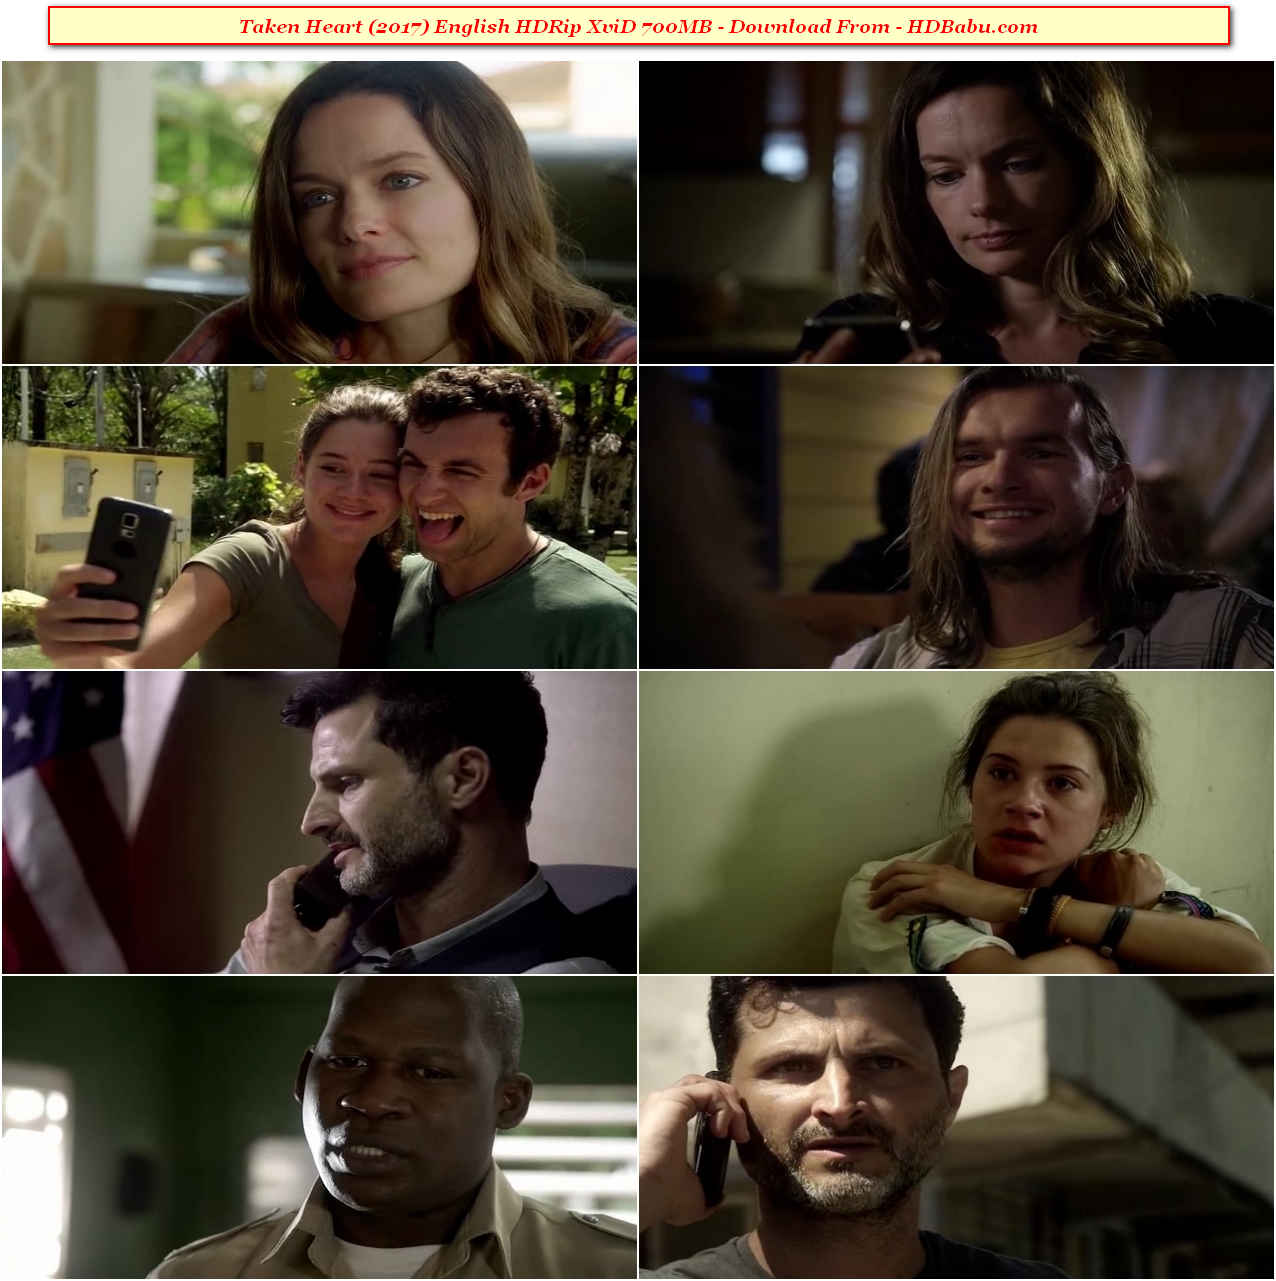 Taken Heart Full Movie Download